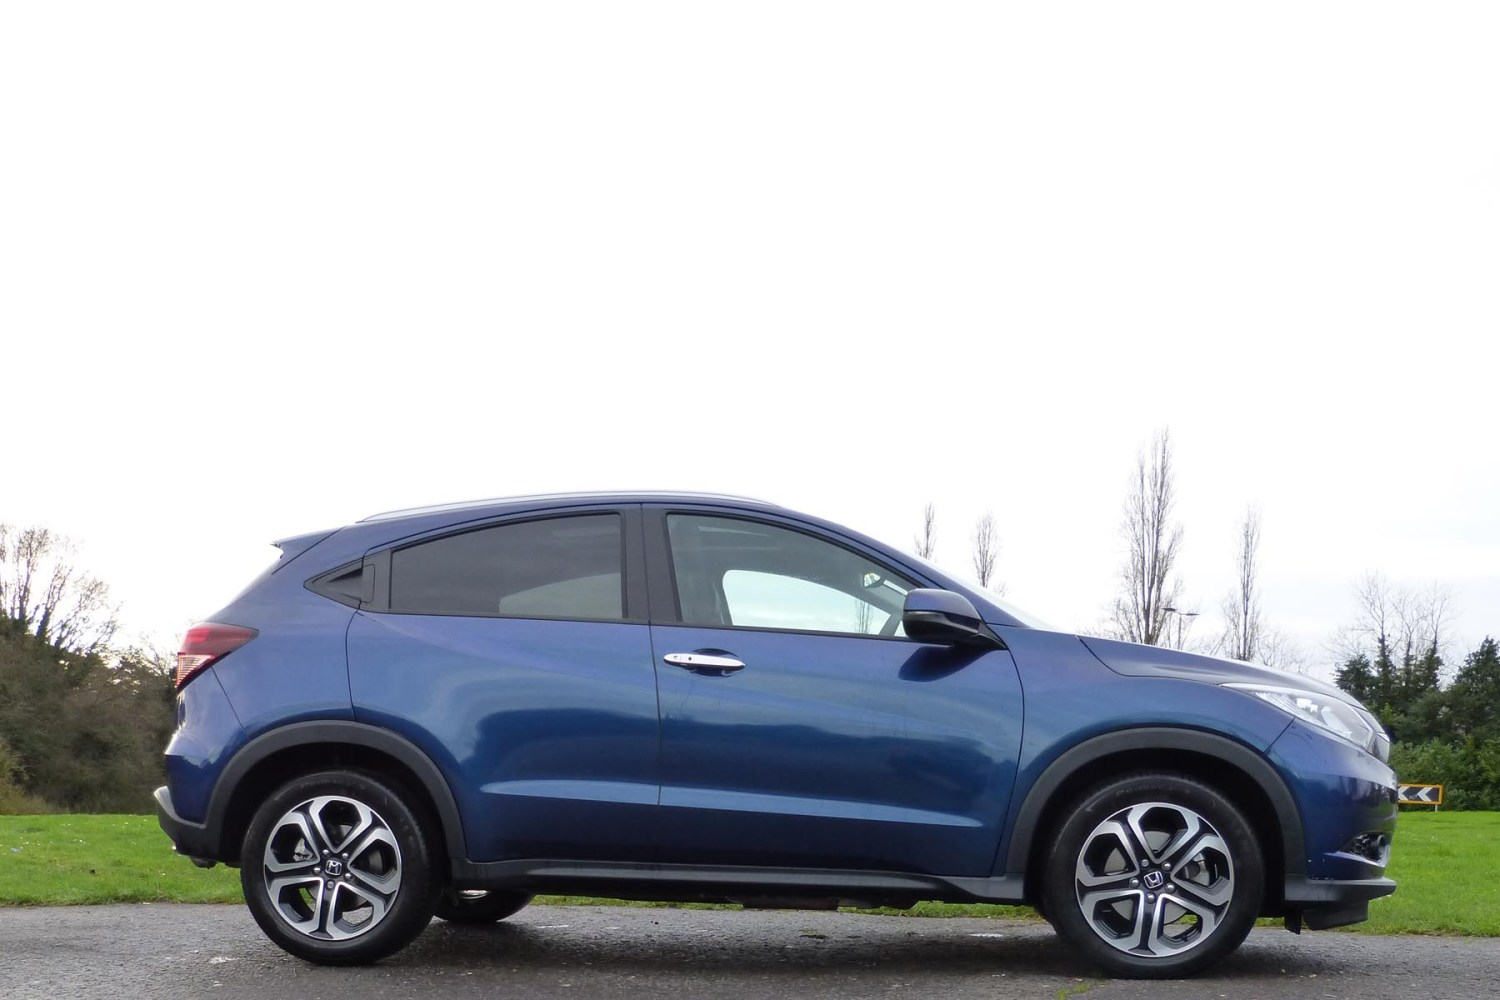 Honda HR-V long-term review: the final verdict